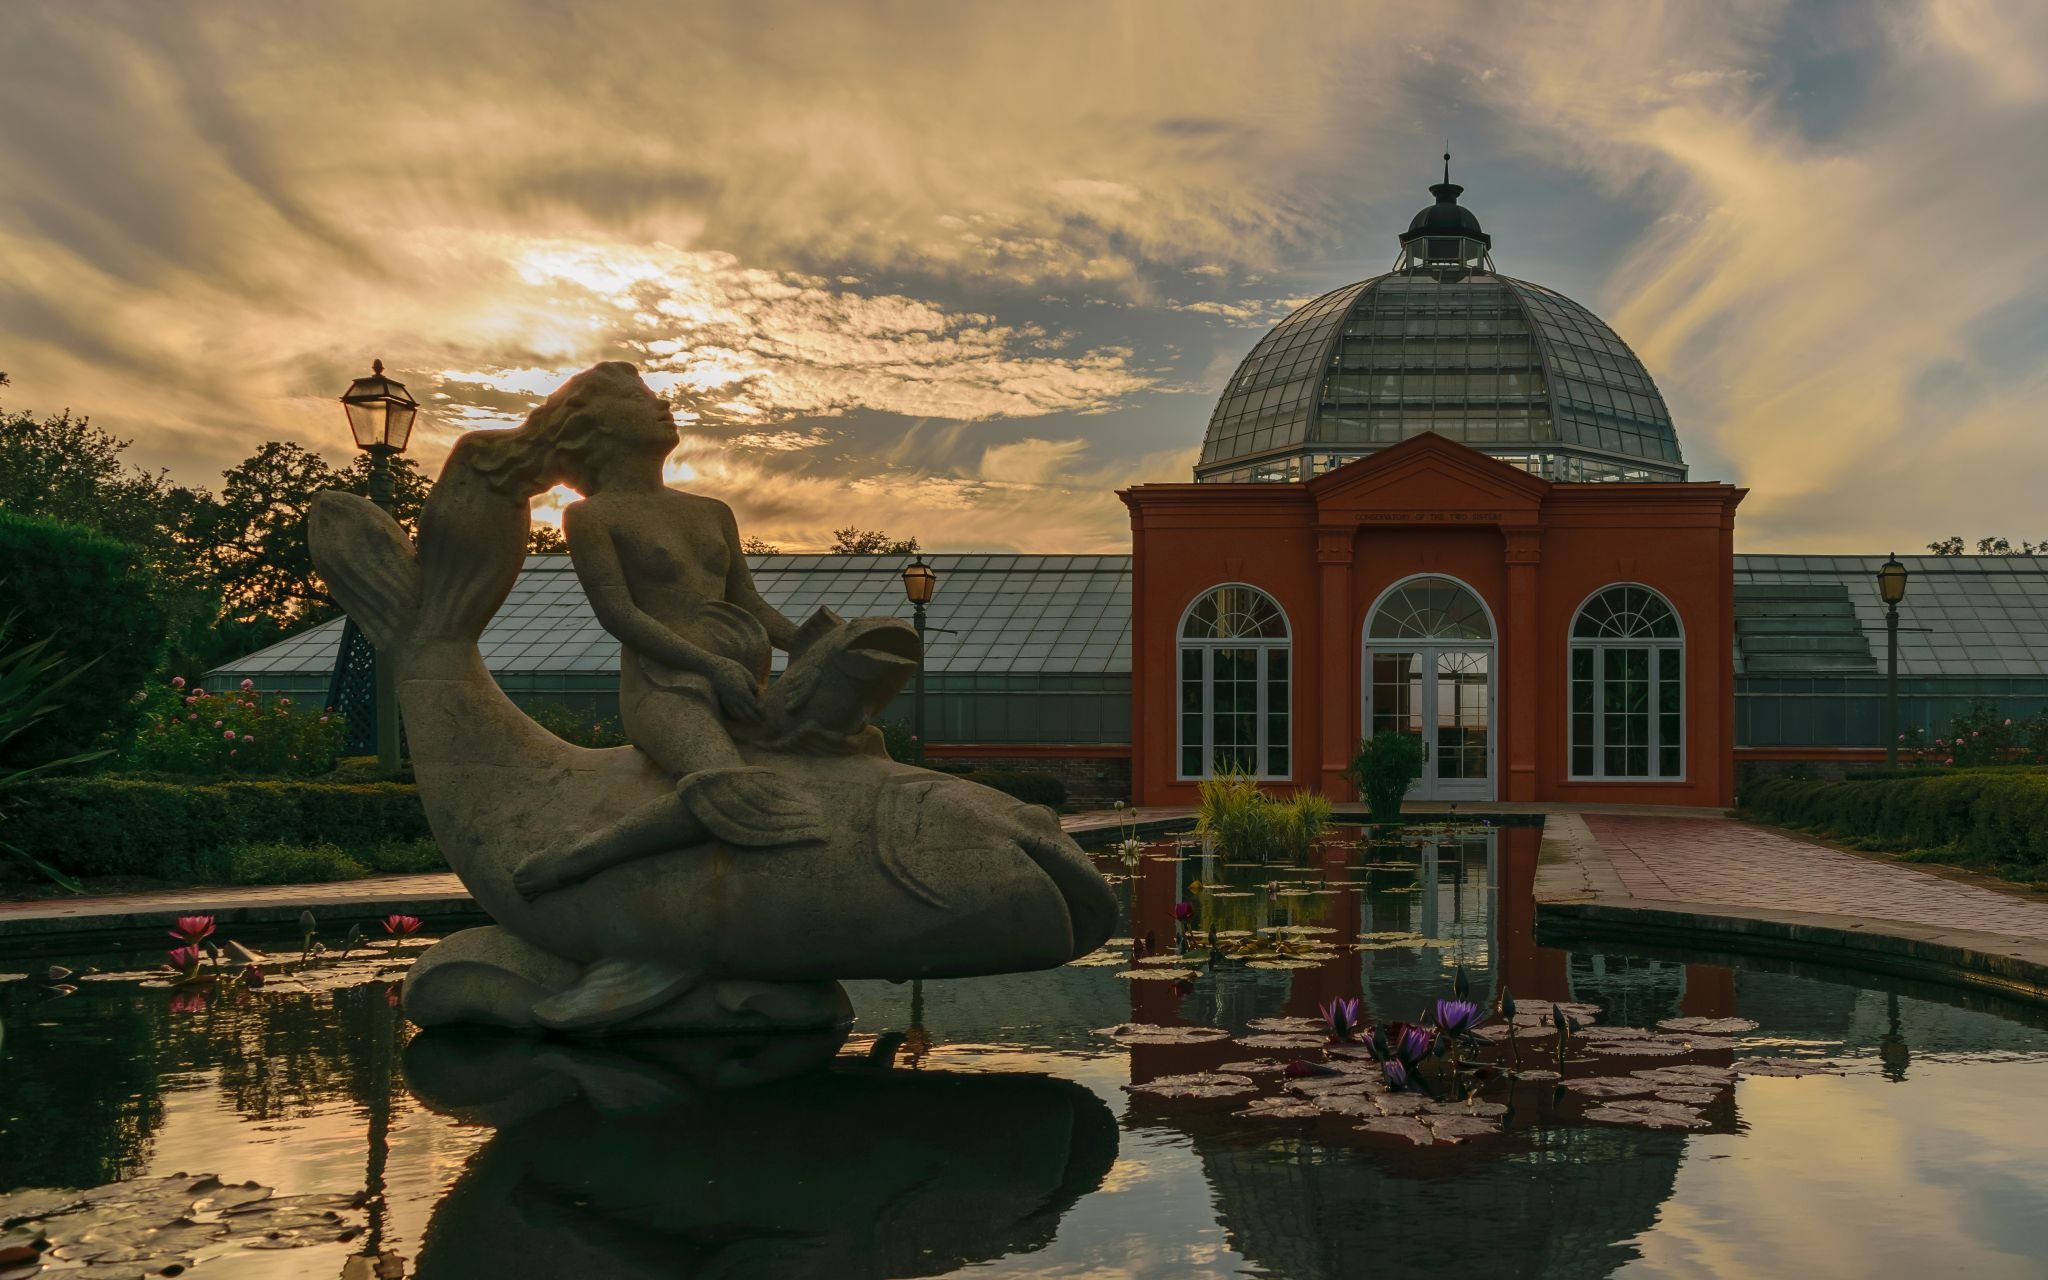 The Conservatory of the Two Sisters, USA